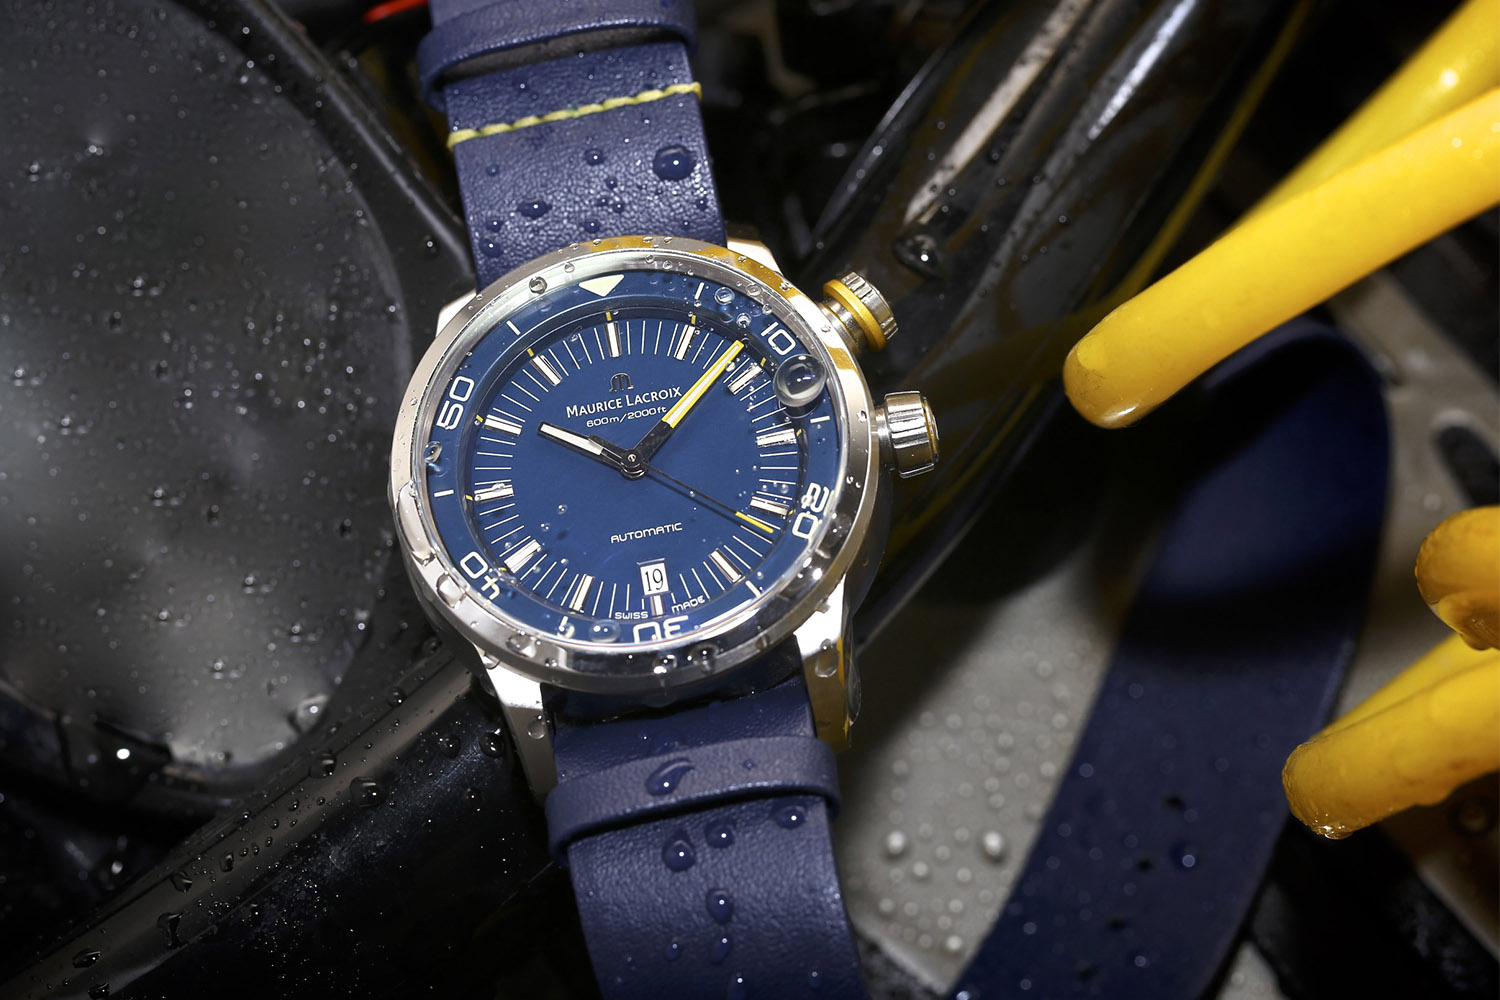 Maurice Lacroix Pontos S Diver Blue Devil Limited Edition North America